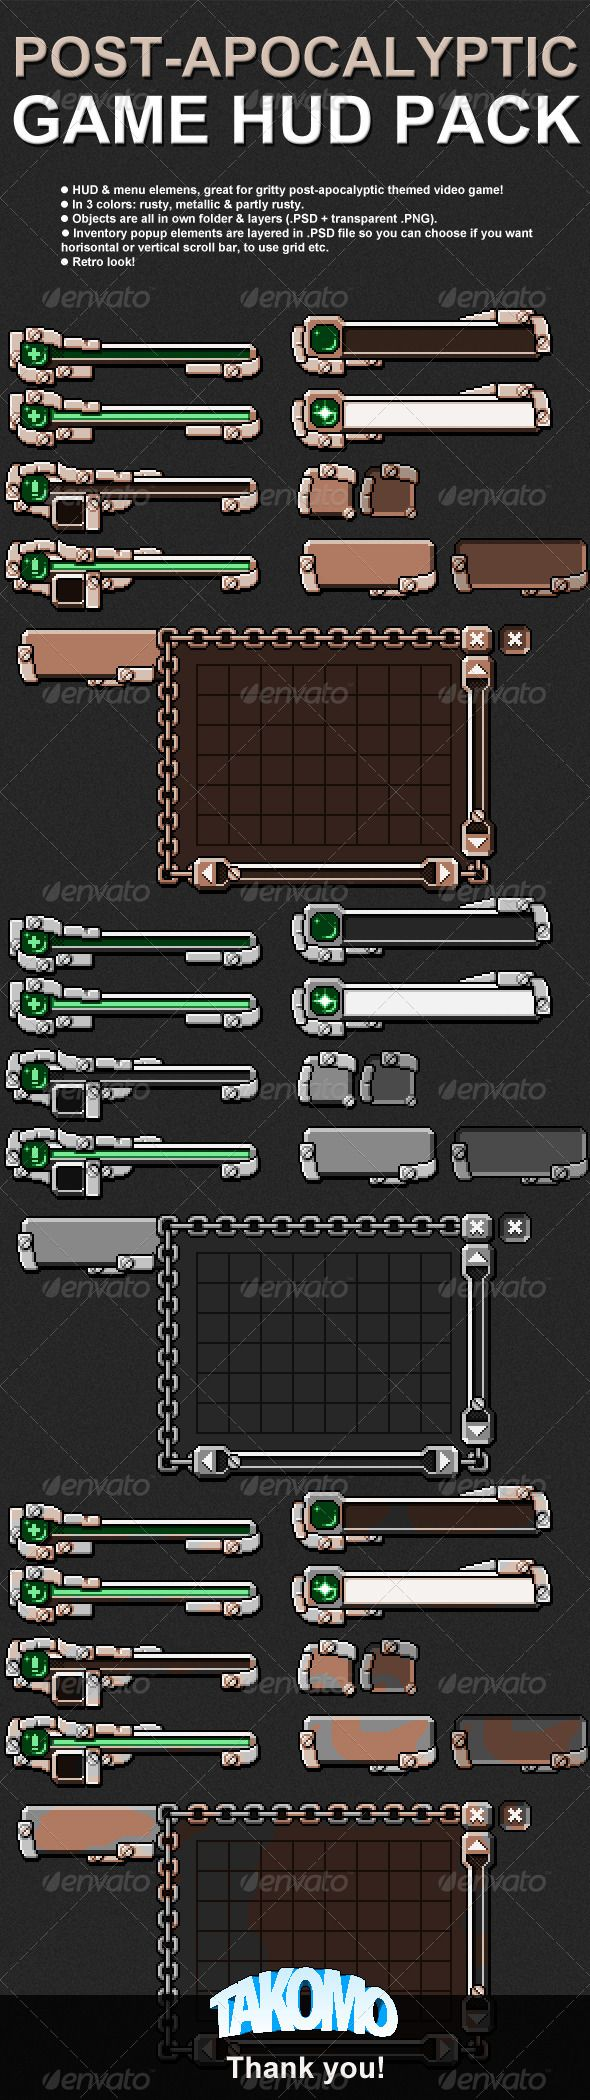 Hud Menu Graphics For Your Game Themed As Post Apocalyptic Gritty Rusty And Worn Out Pack Zip Contains Post Apocalyptic Games Pixel Art Games Health Bar